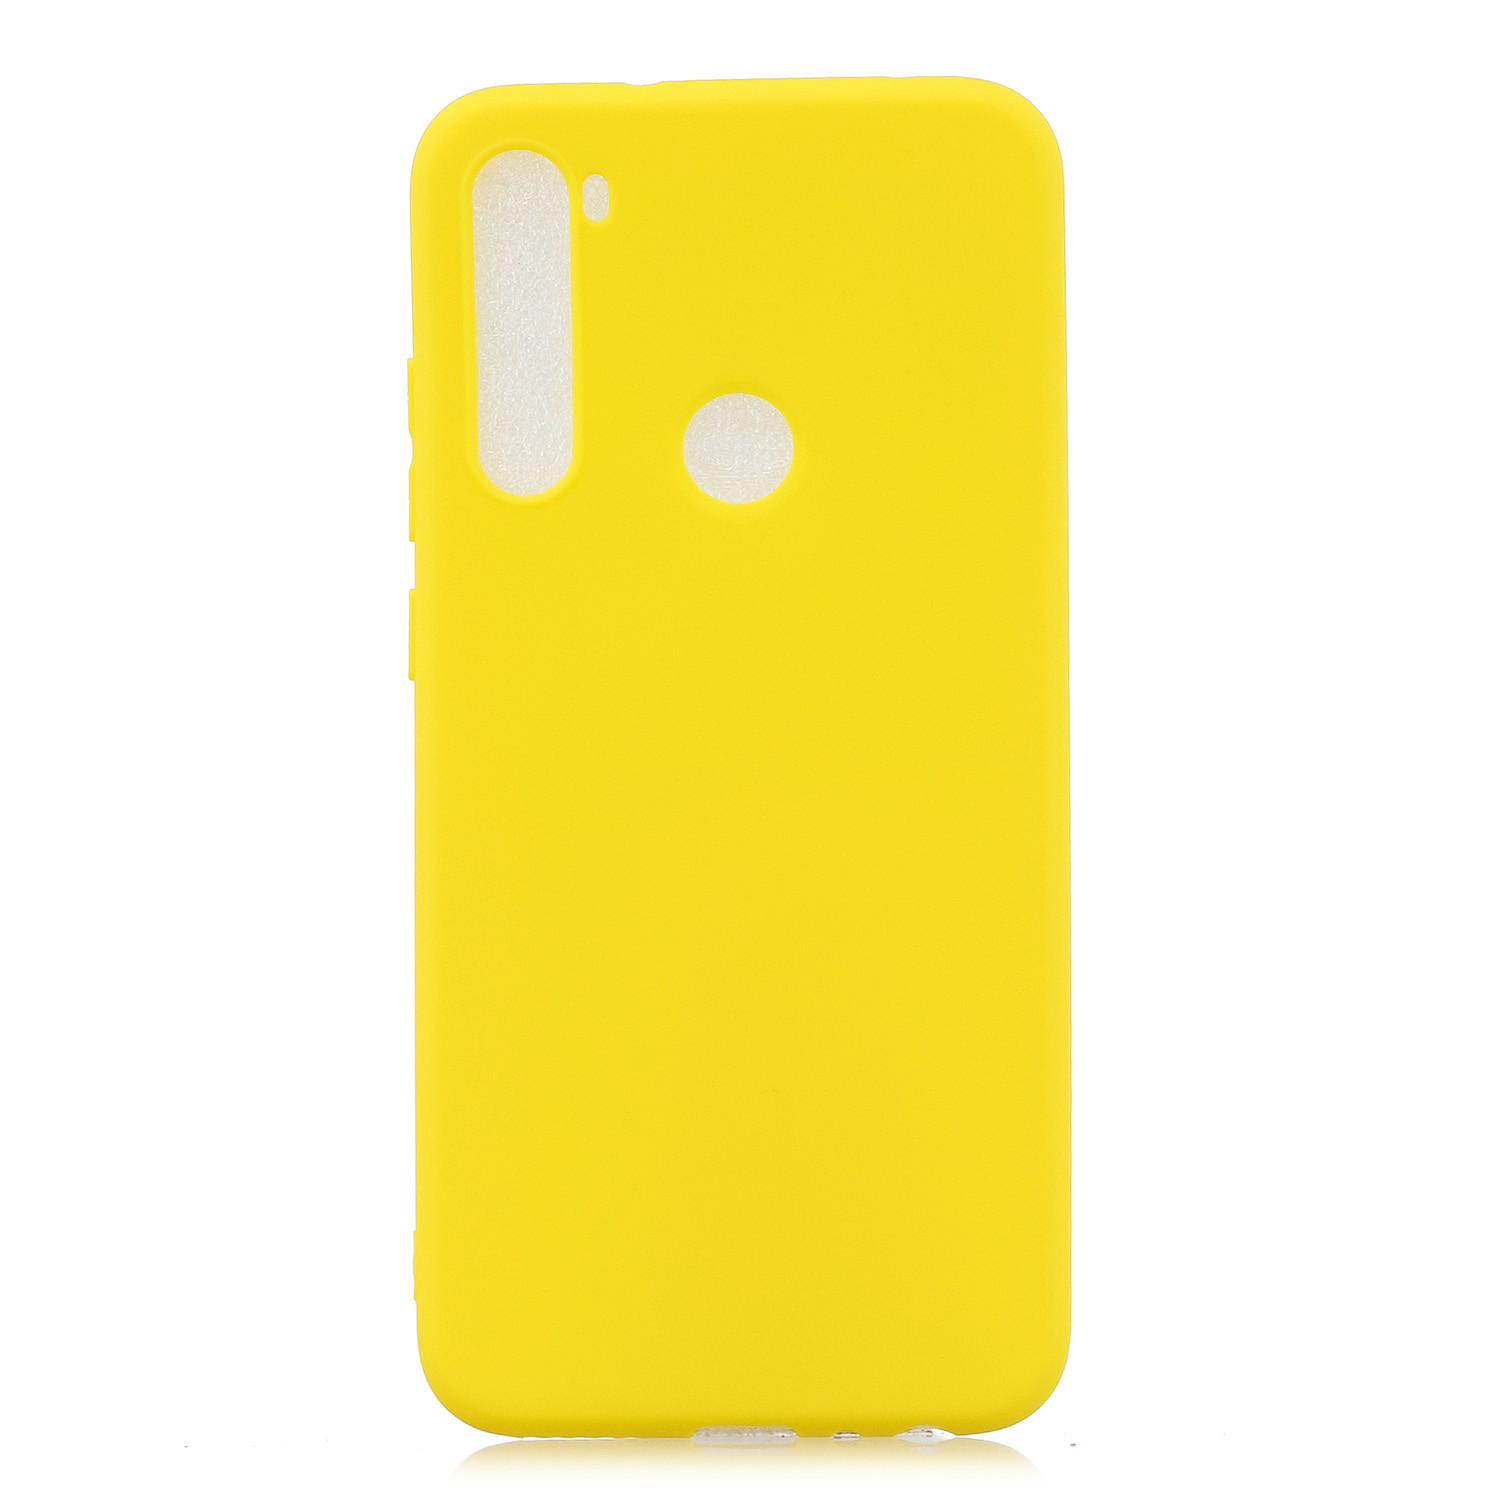 For Samsung A01/ A11/A21/A41/A51/A71/A81/A91 Mobile Phone Case Lovely Candy Color Matte TPU Anti-scratch Non-slip Protective Cover Back Case 3 yellow